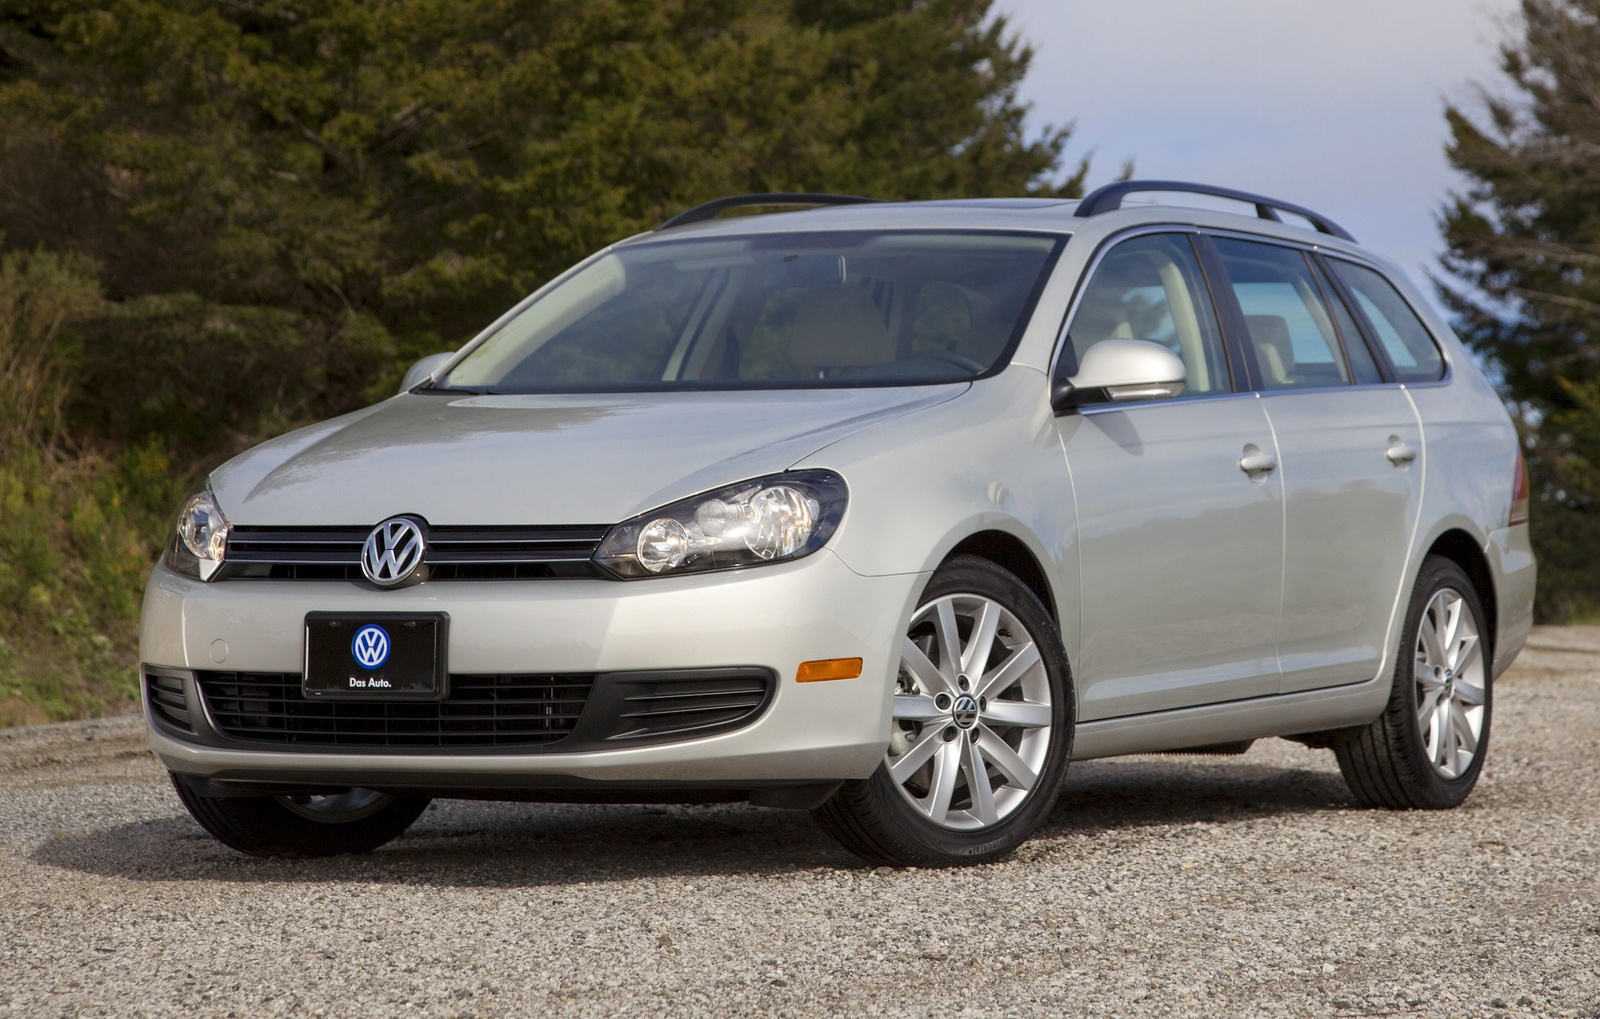 2014 volkswagen jetta sportwagen review cargurus. Black Bedroom Furniture Sets. Home Design Ideas